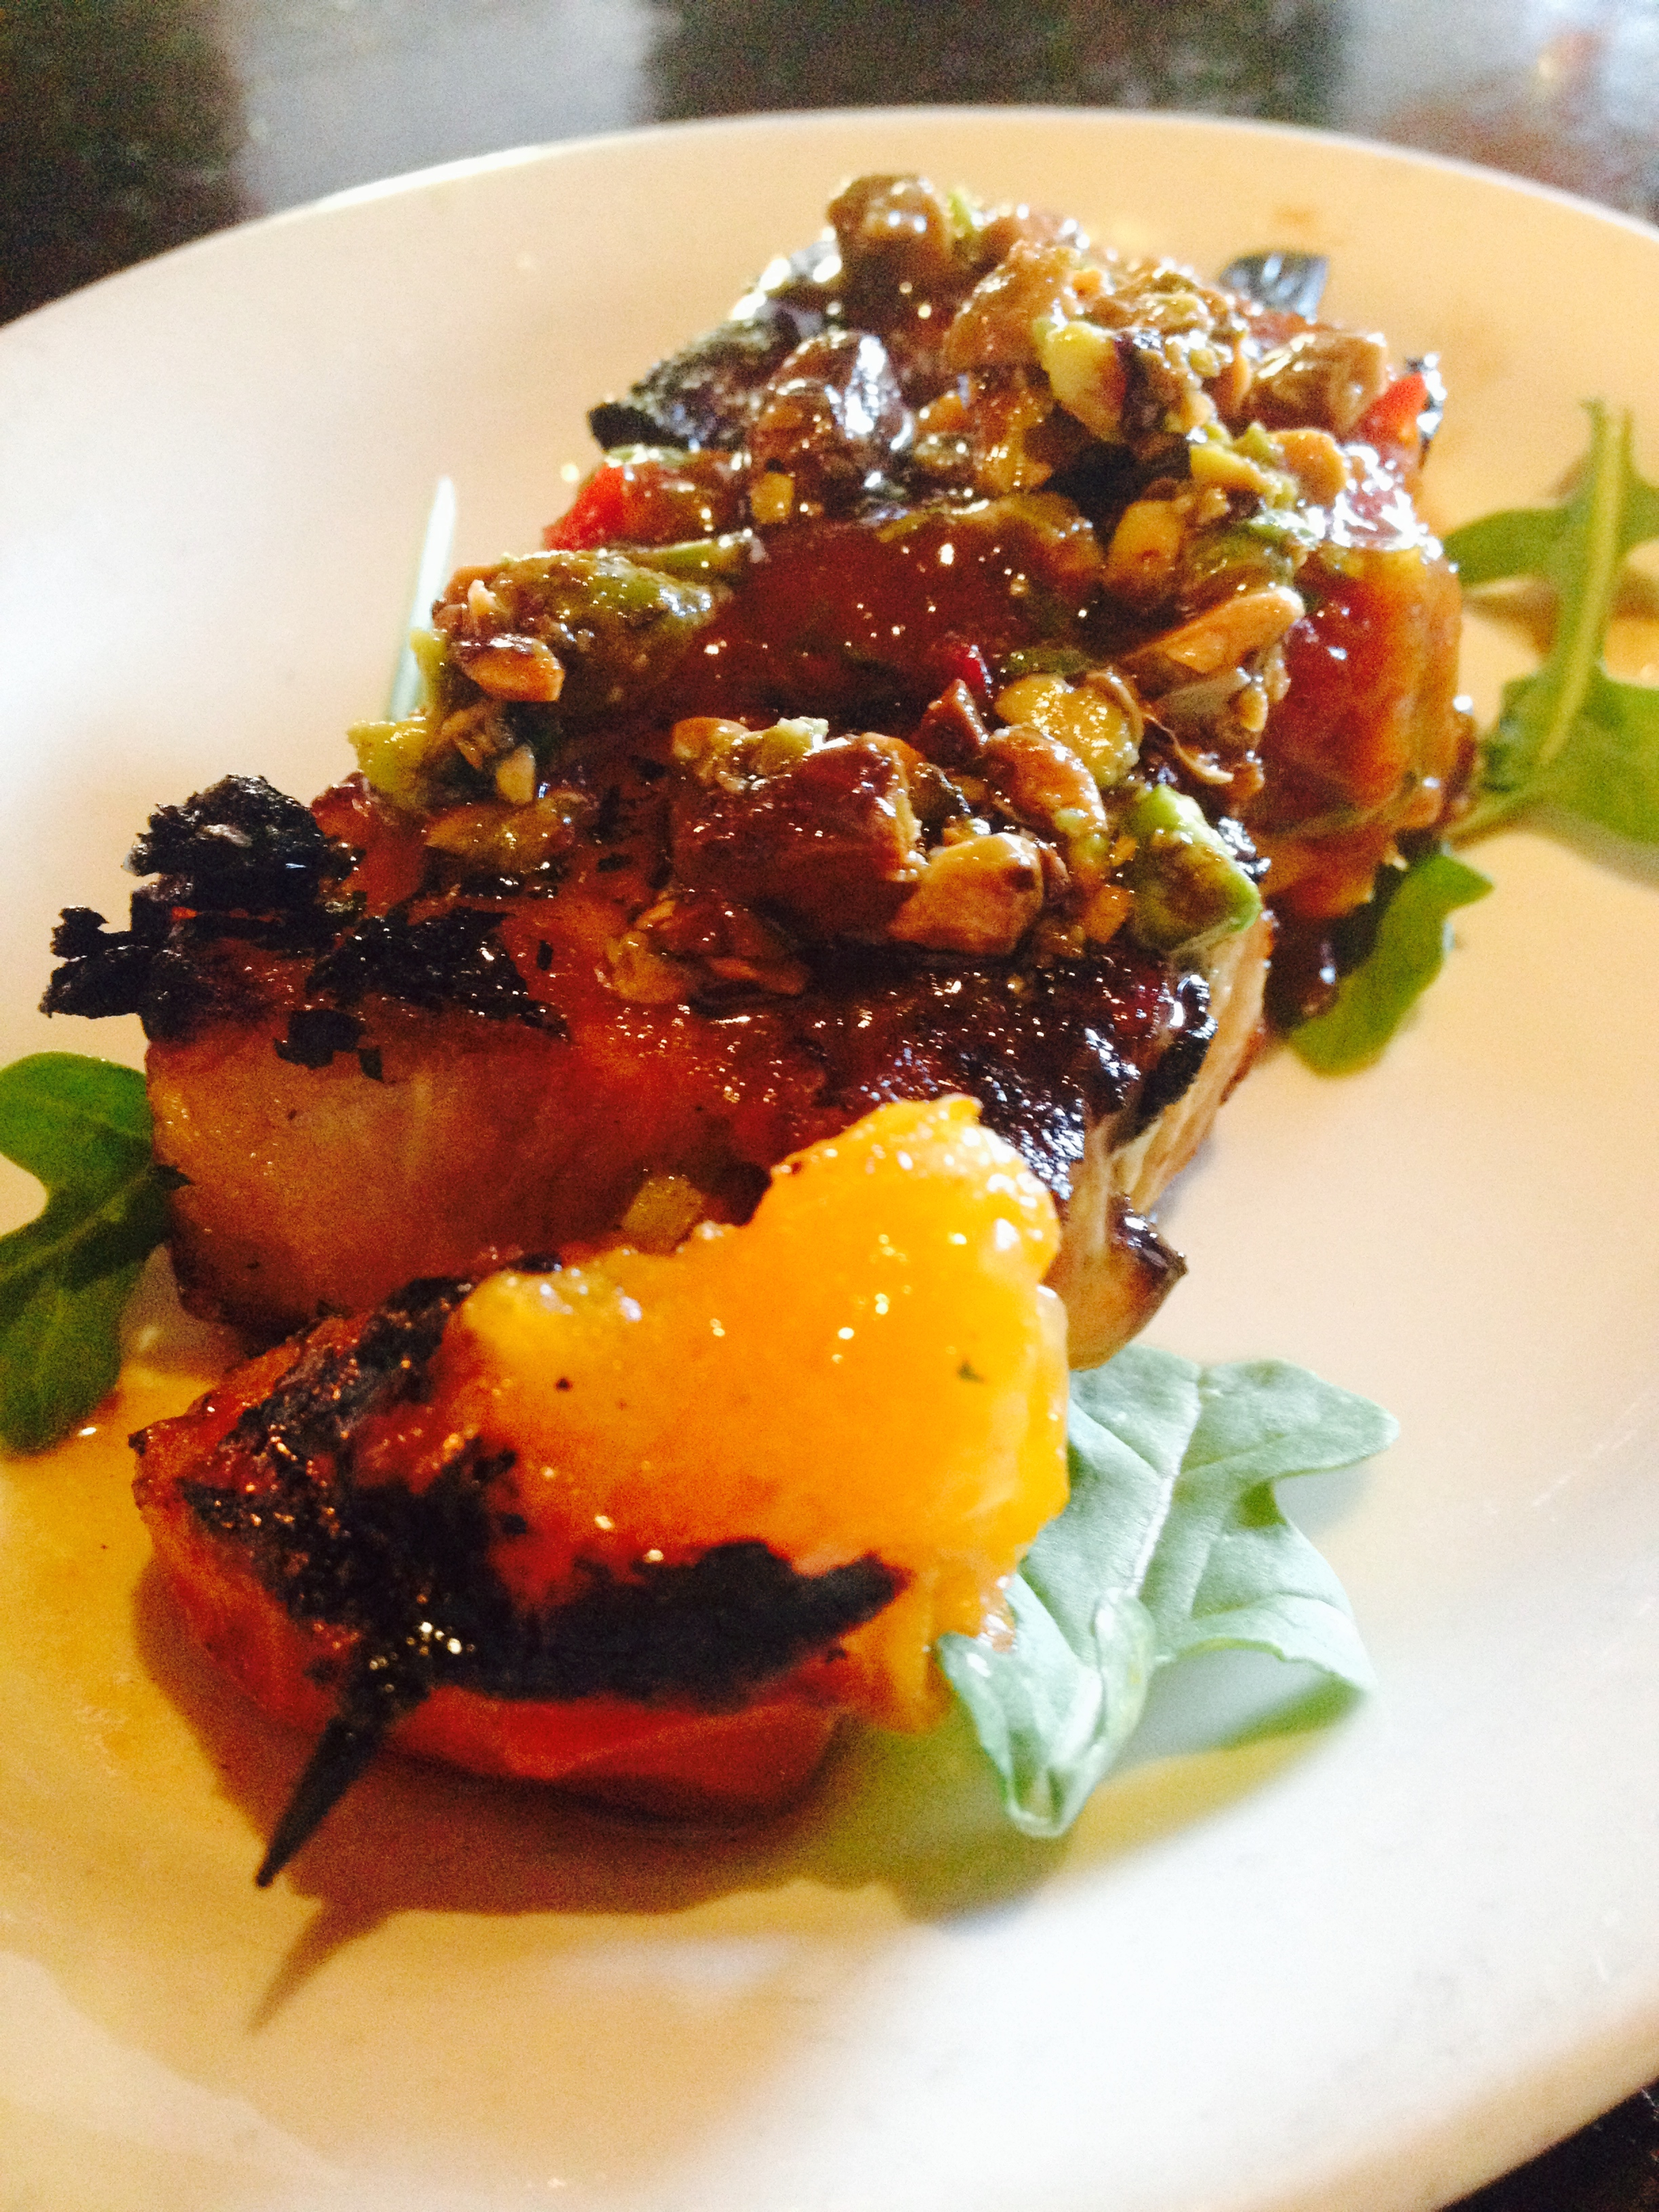 Grilled Pork Belly & Apricot Skewer with spicy apricot chutney and pistachios.